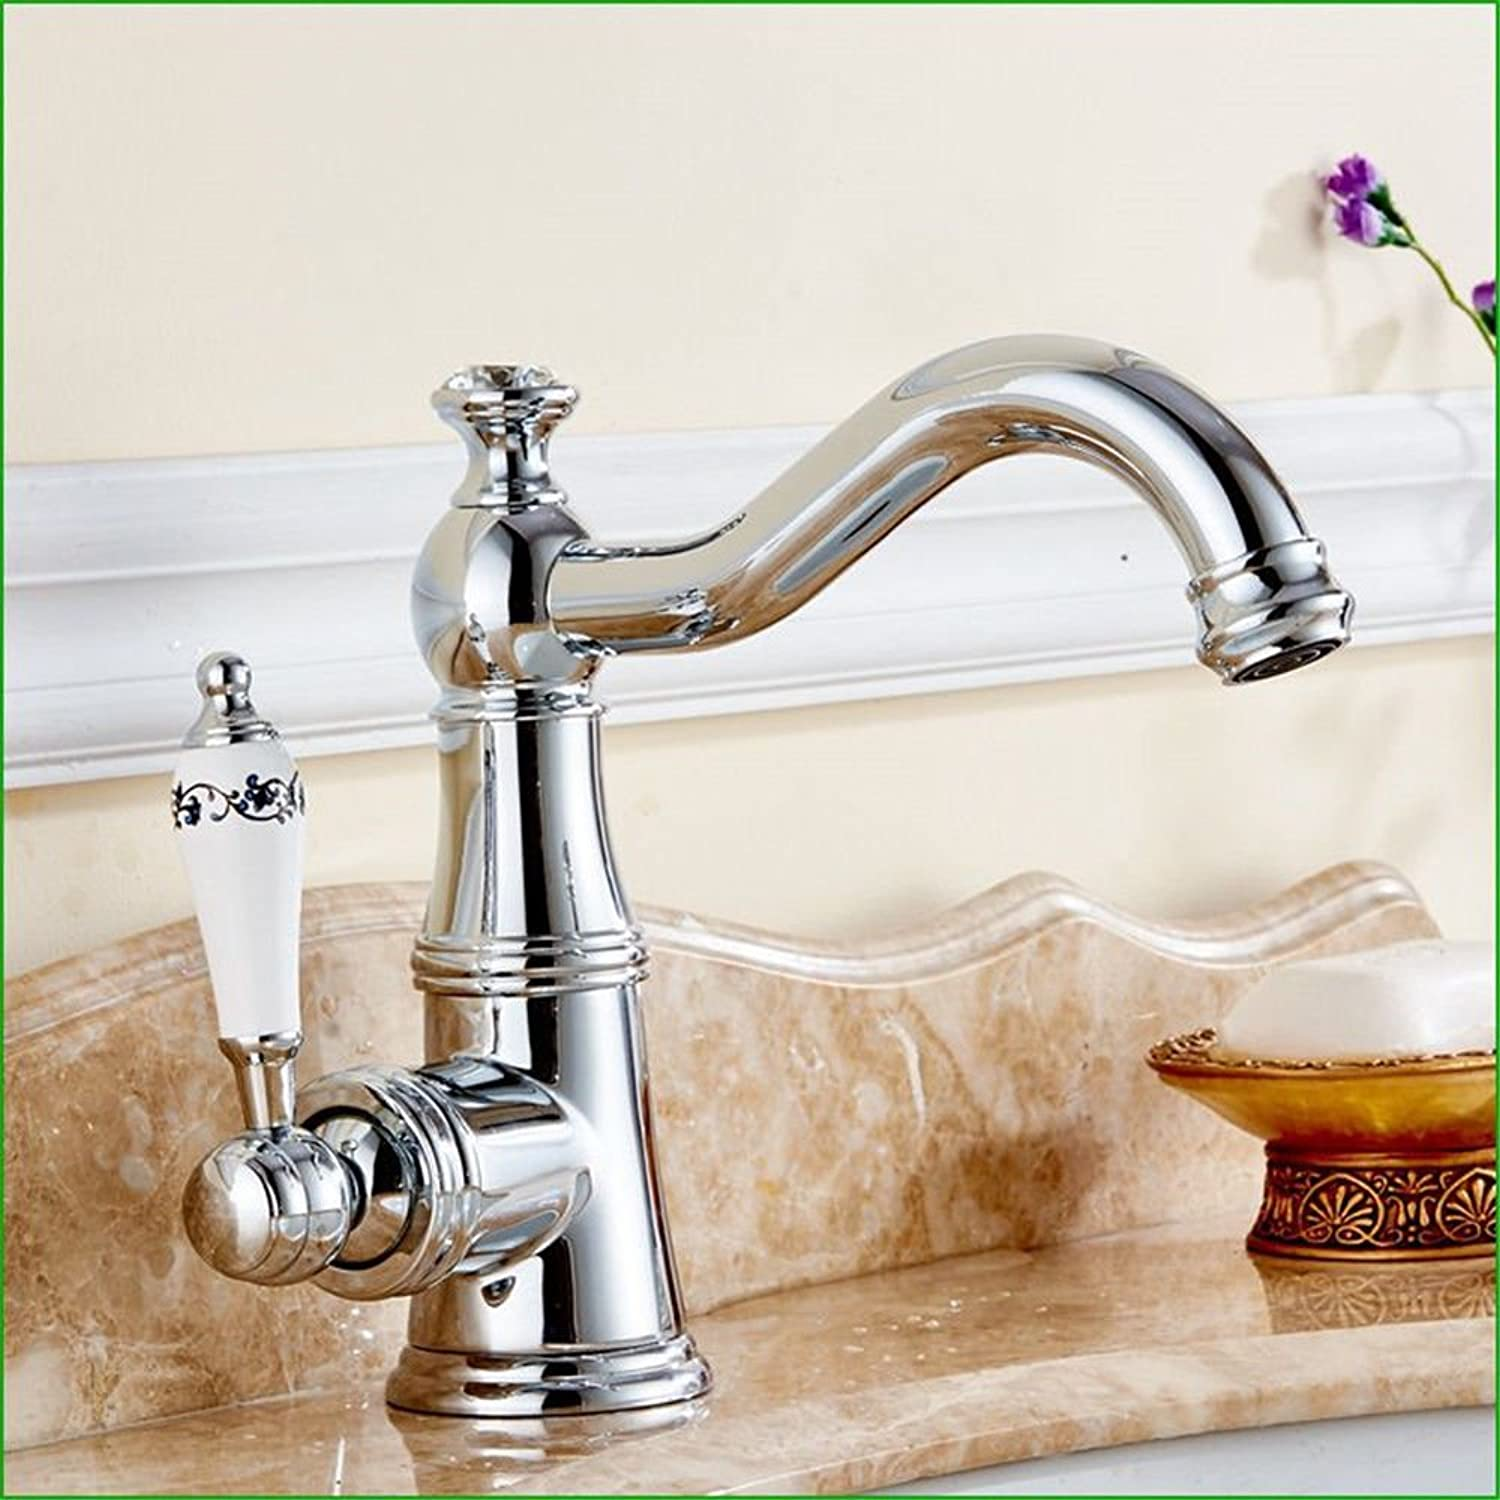 Hlluya Professional Sink Mixer Tap Kitchen Faucet Retro-copper silver chrome bathroom swivel basin sink faucet hot and cold water bathroom faucet ceramic handle